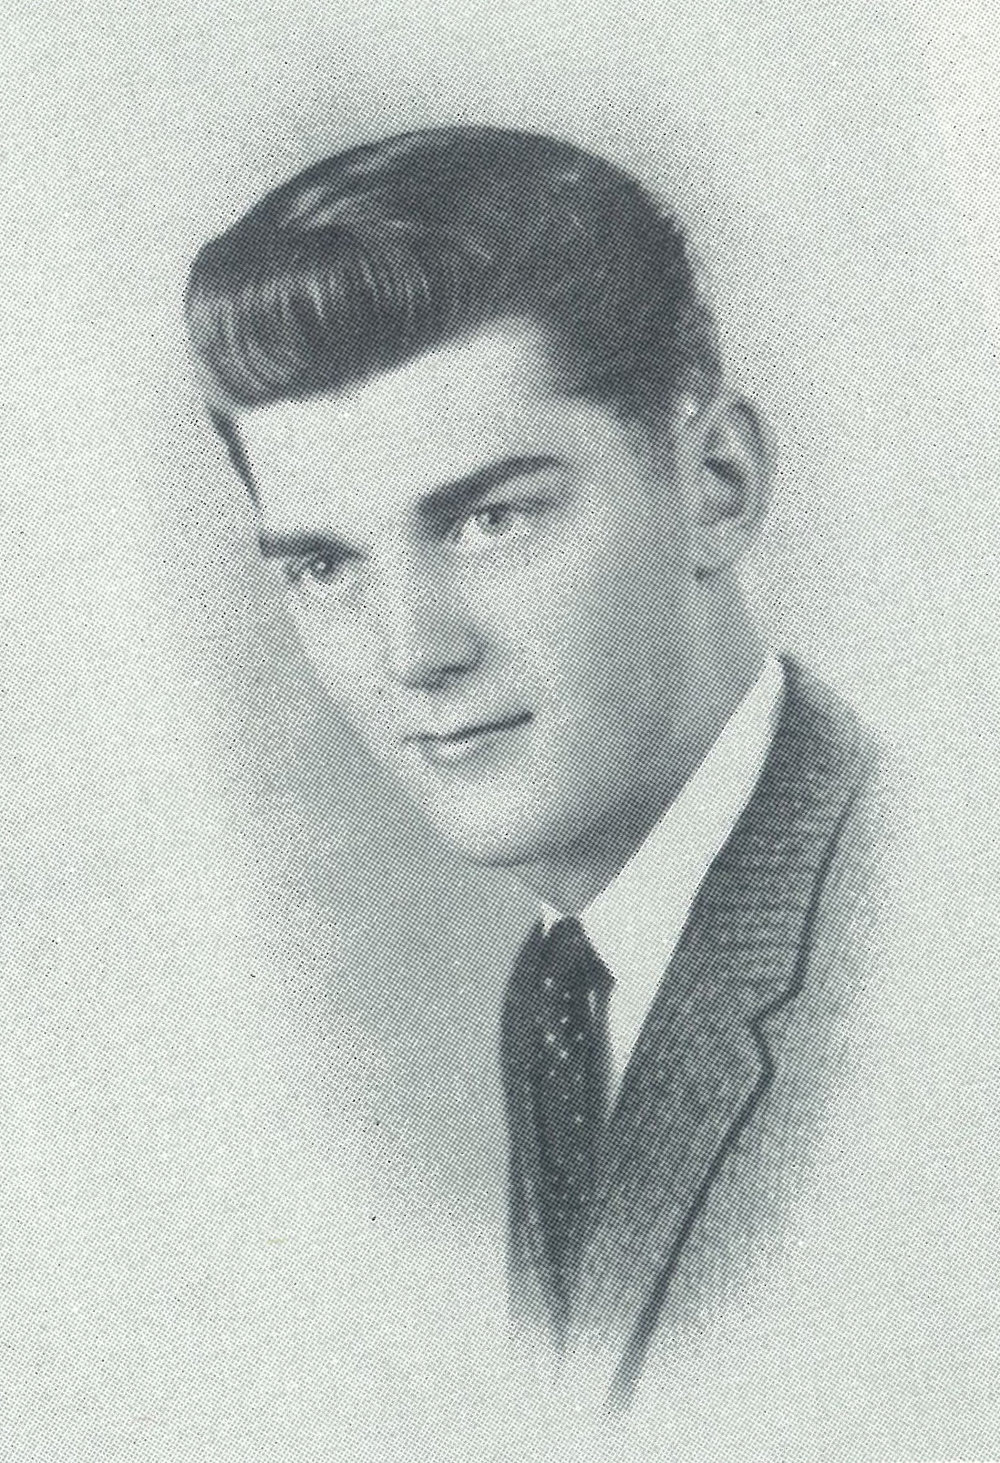 Joel Egge's senior photo from the 1959 beacon.